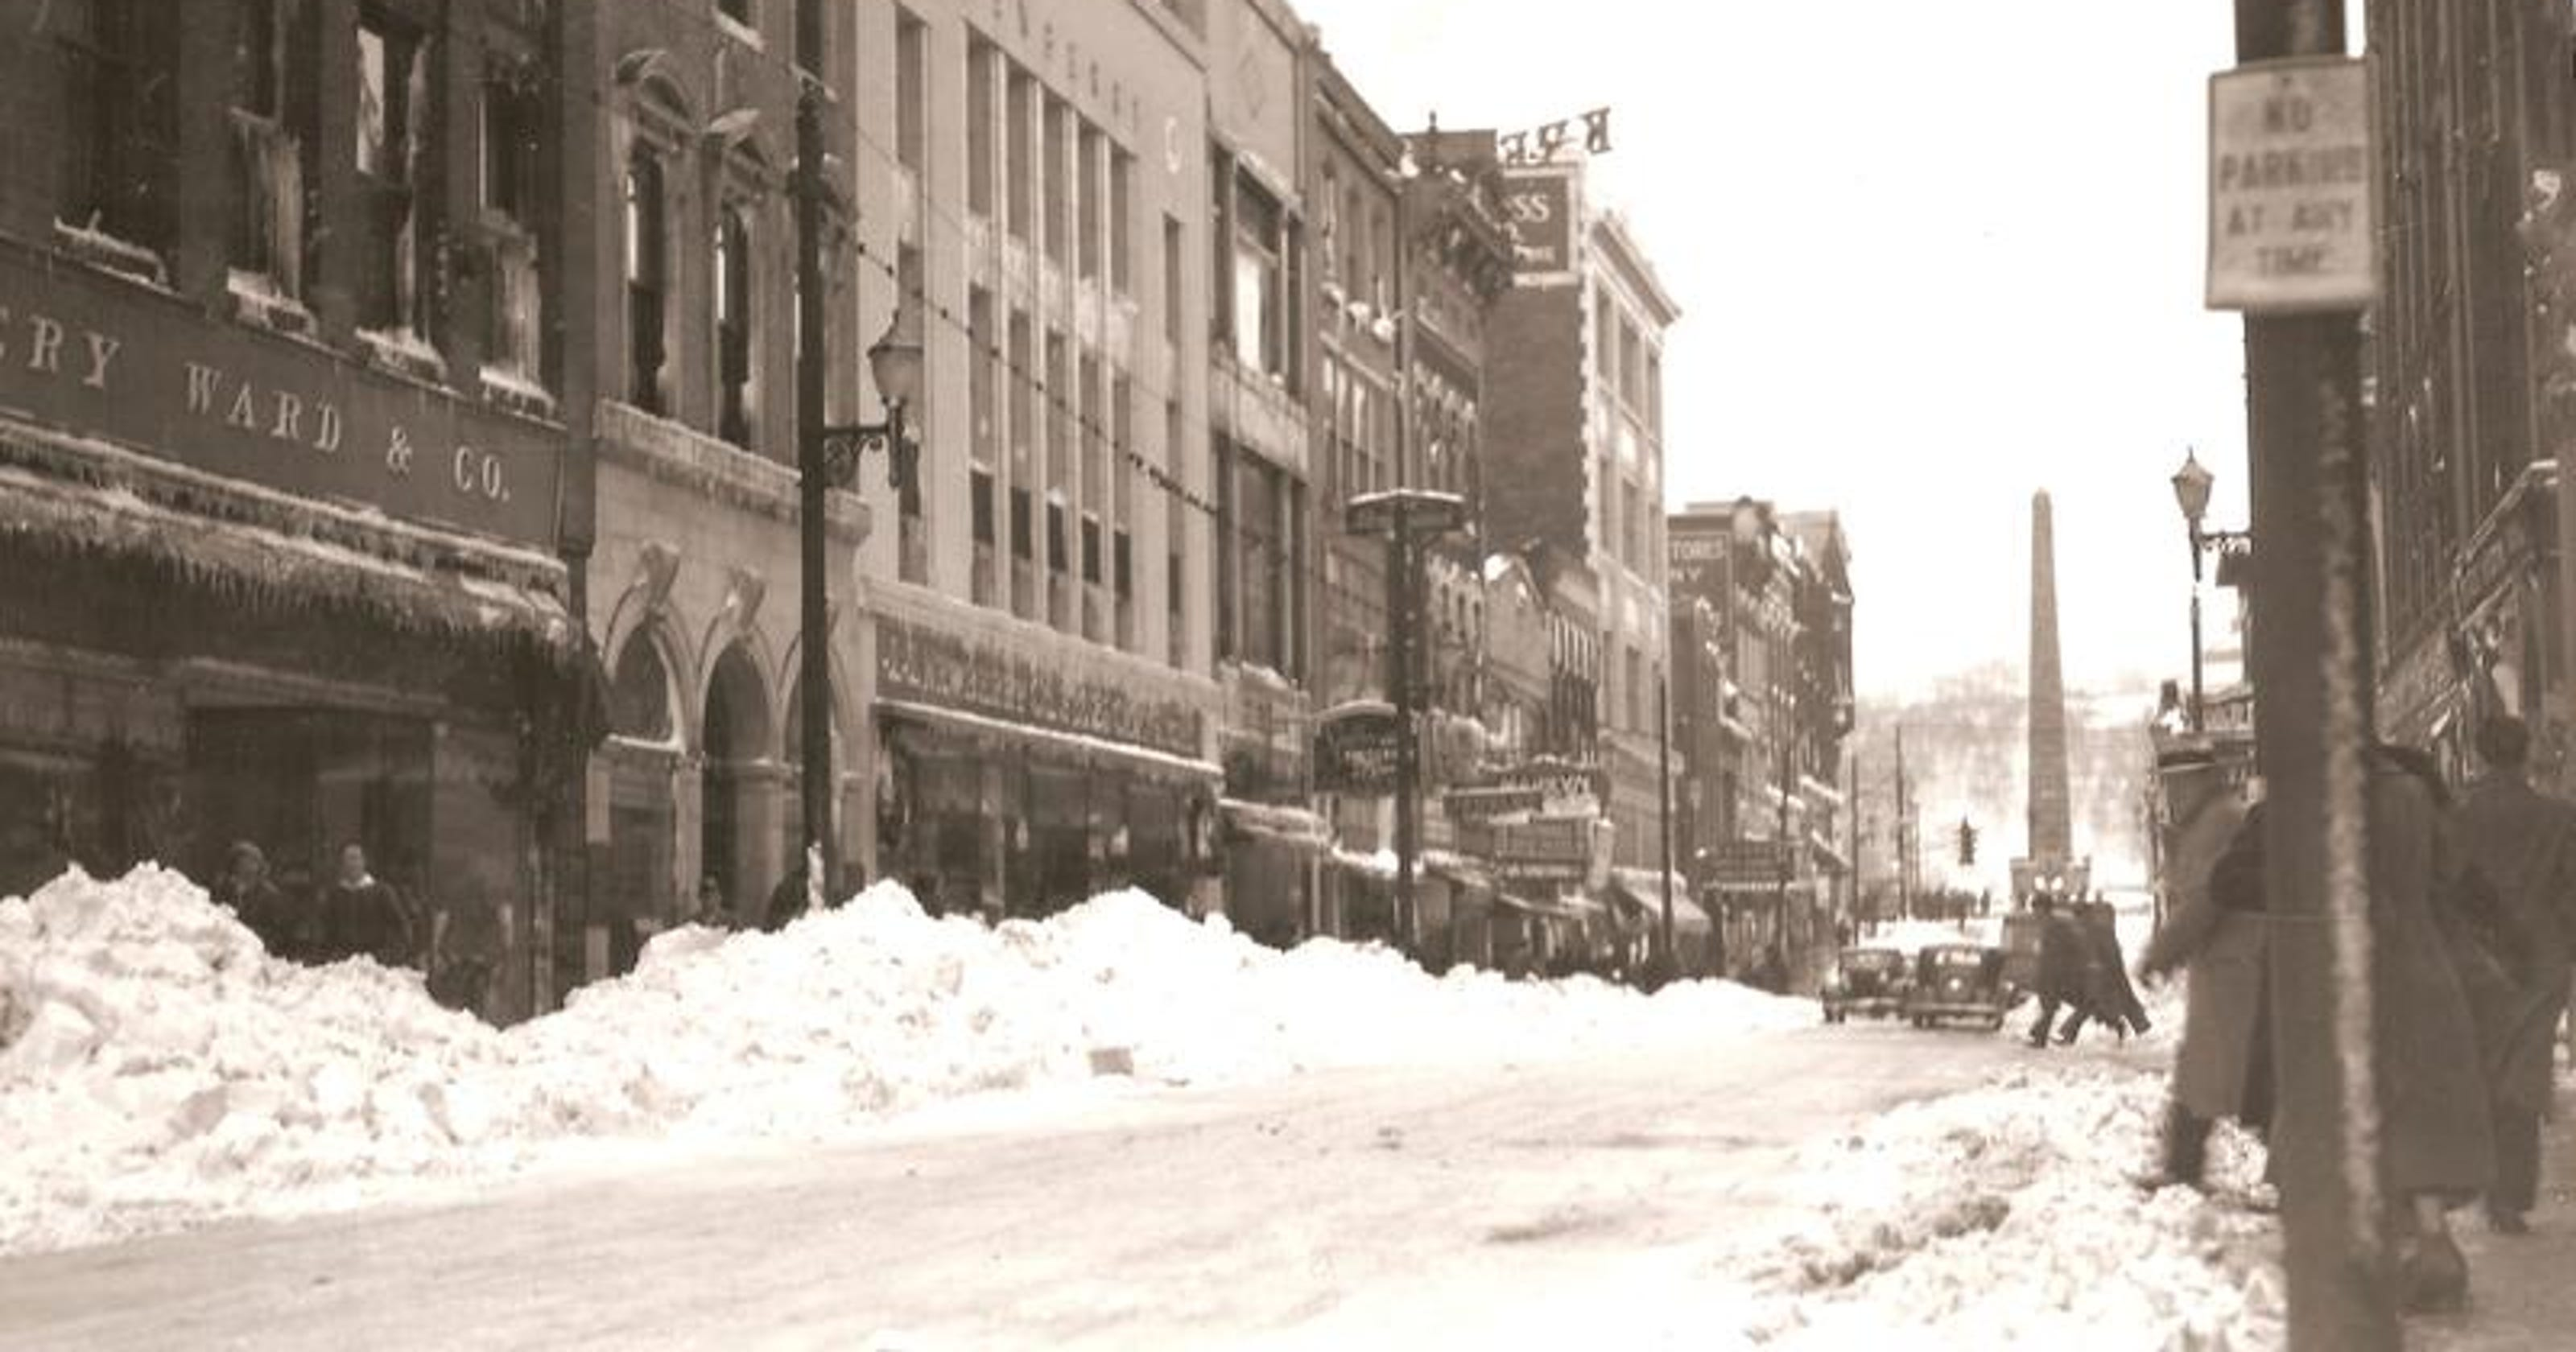 Rob Neufeld looks back at snowy winters of the past